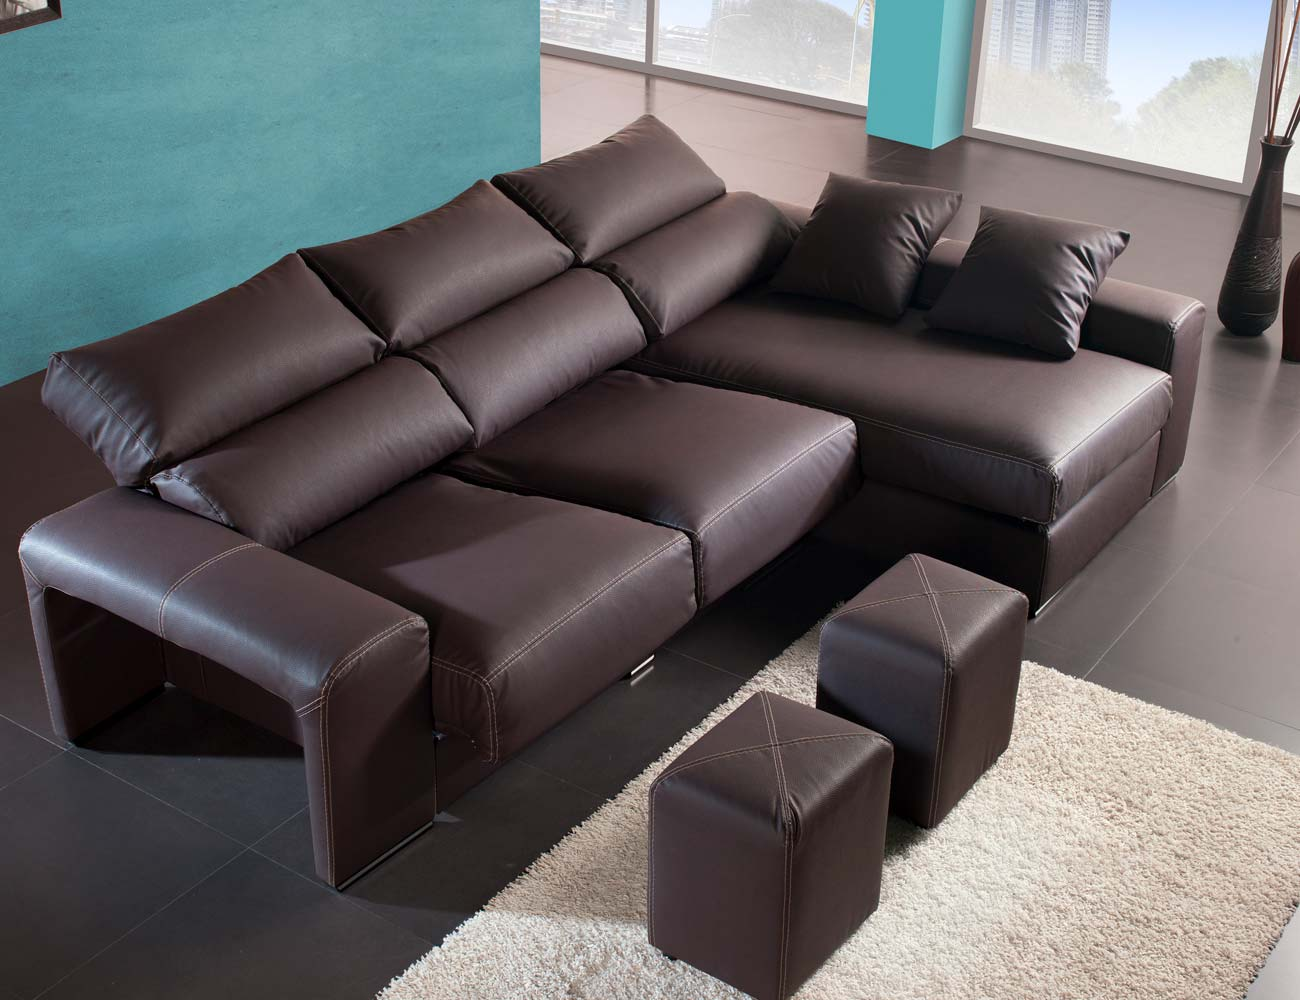 Sofa chaiselongue moderno polipiel chocolate poufs taburetes18